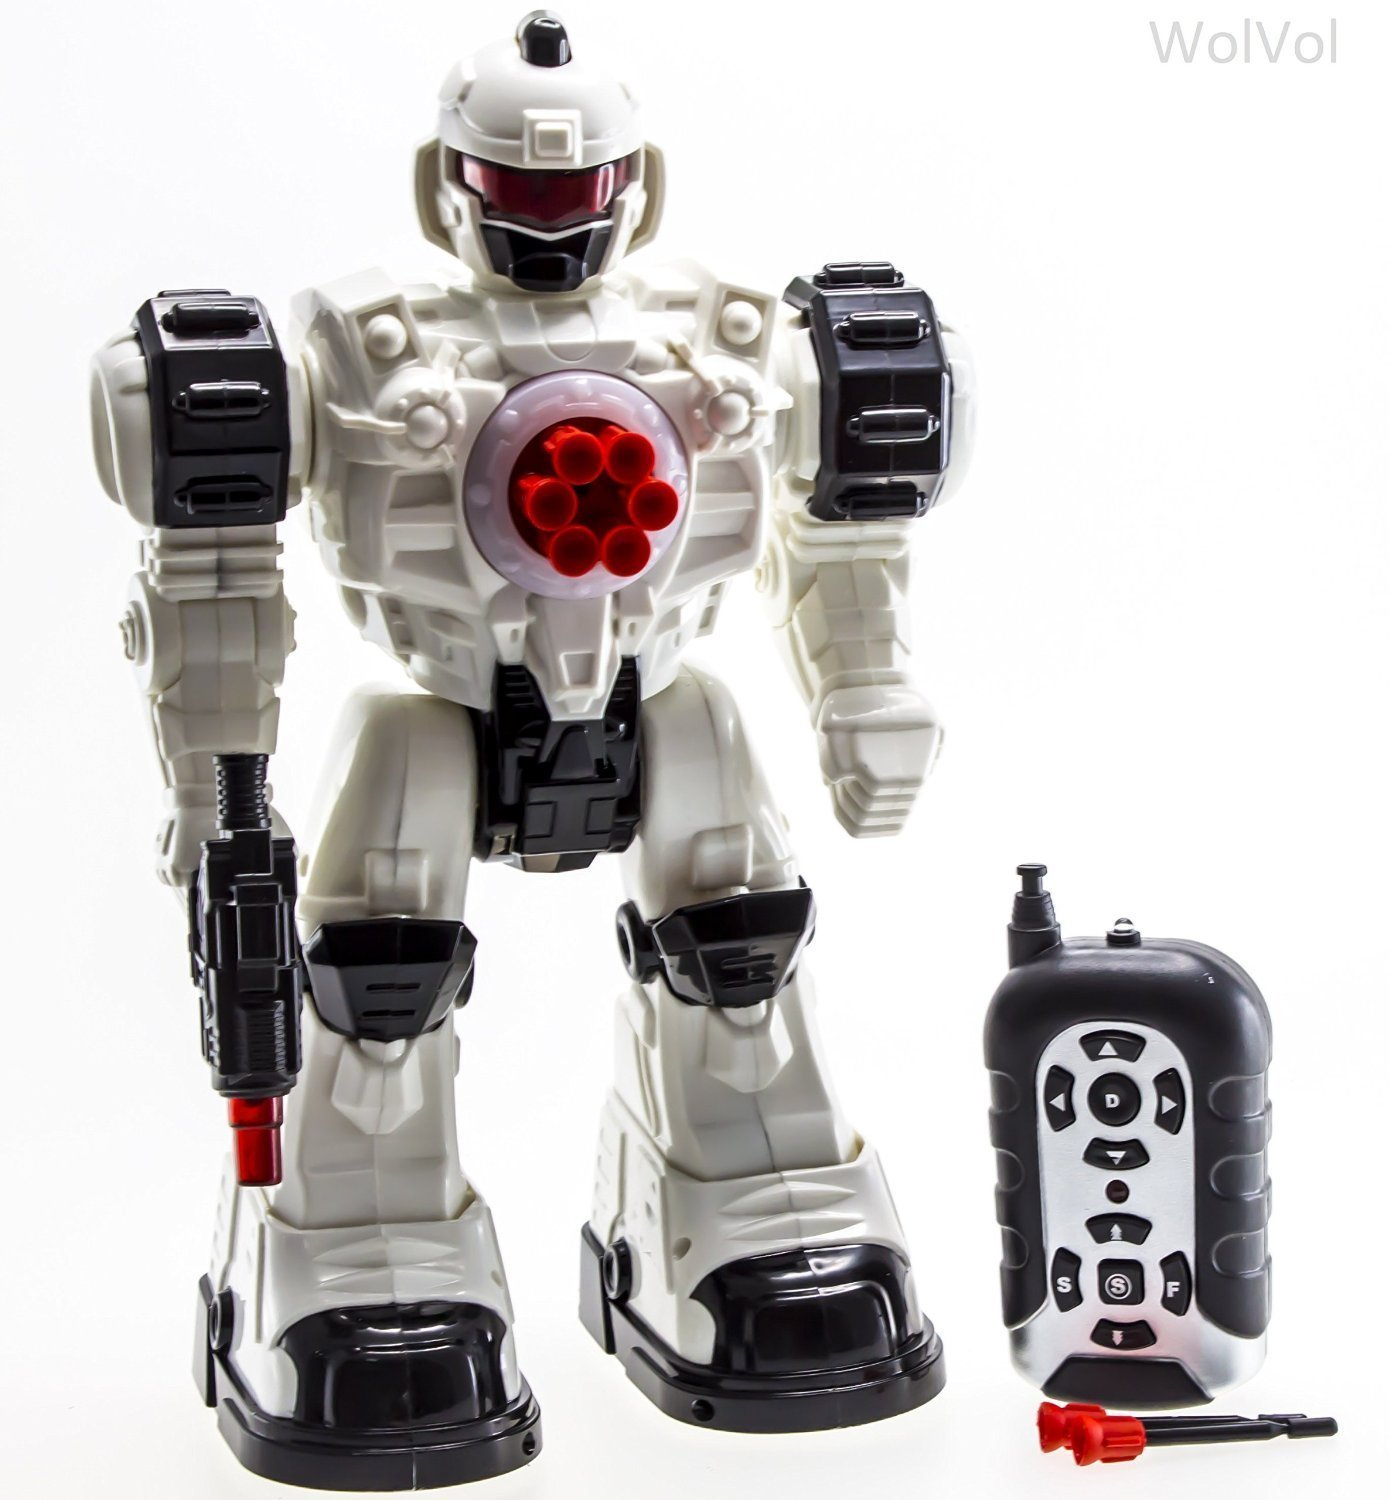 WolVol Remote Control Toy Robot